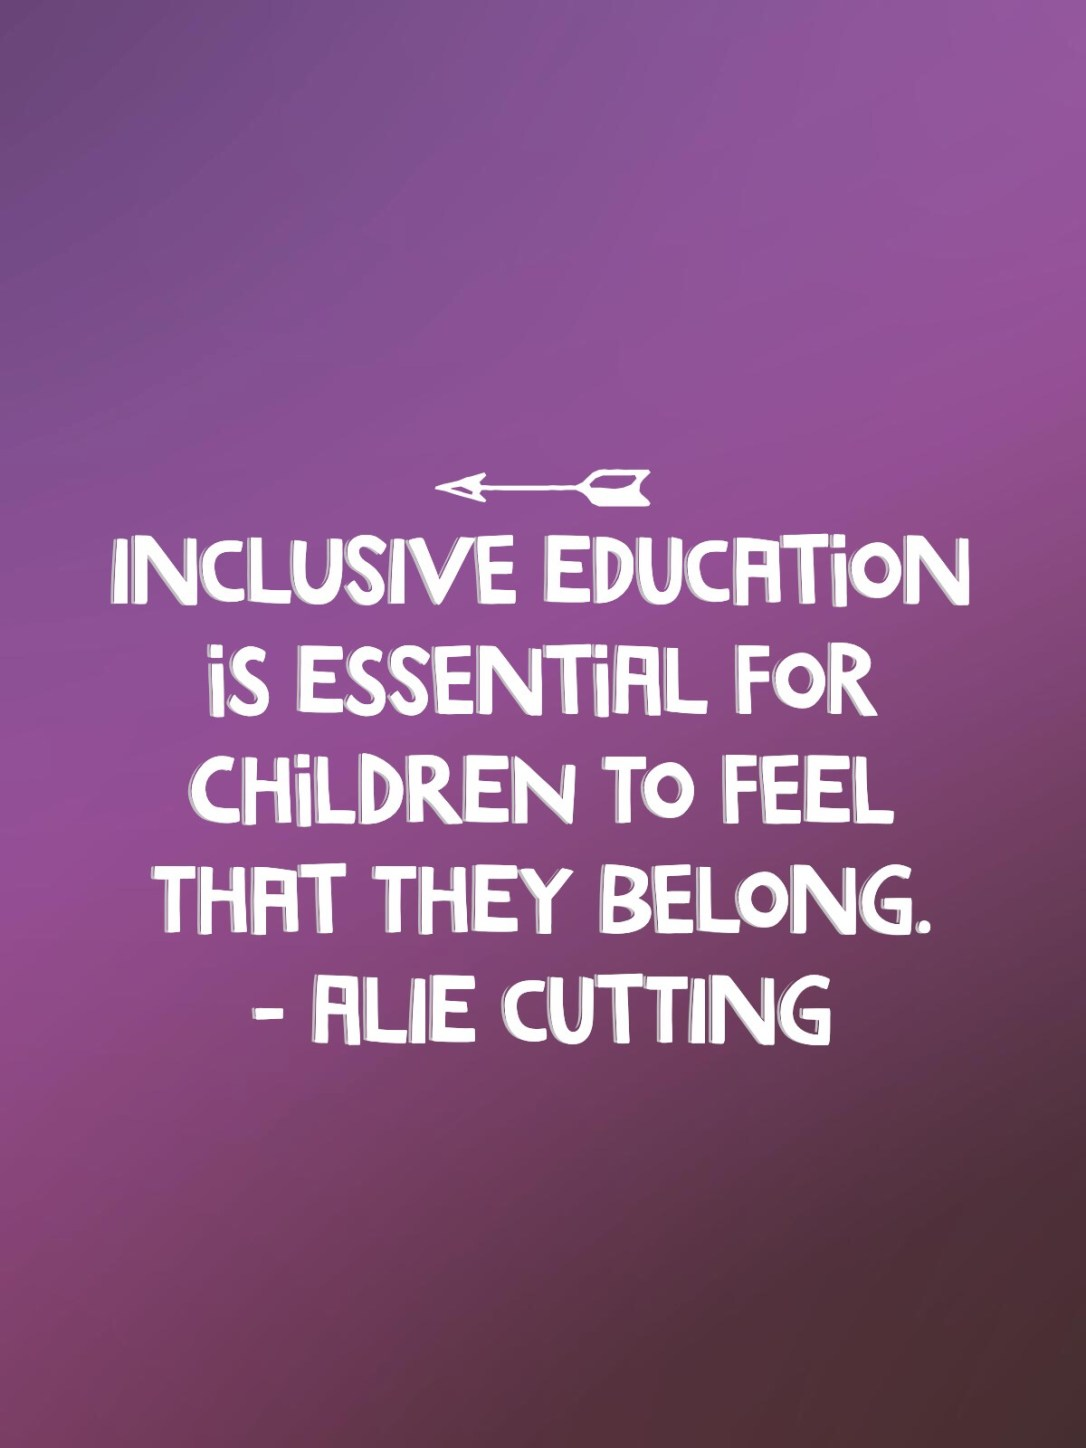 Inclusive education is essential for children to feel that they belong. - Alie Cutting